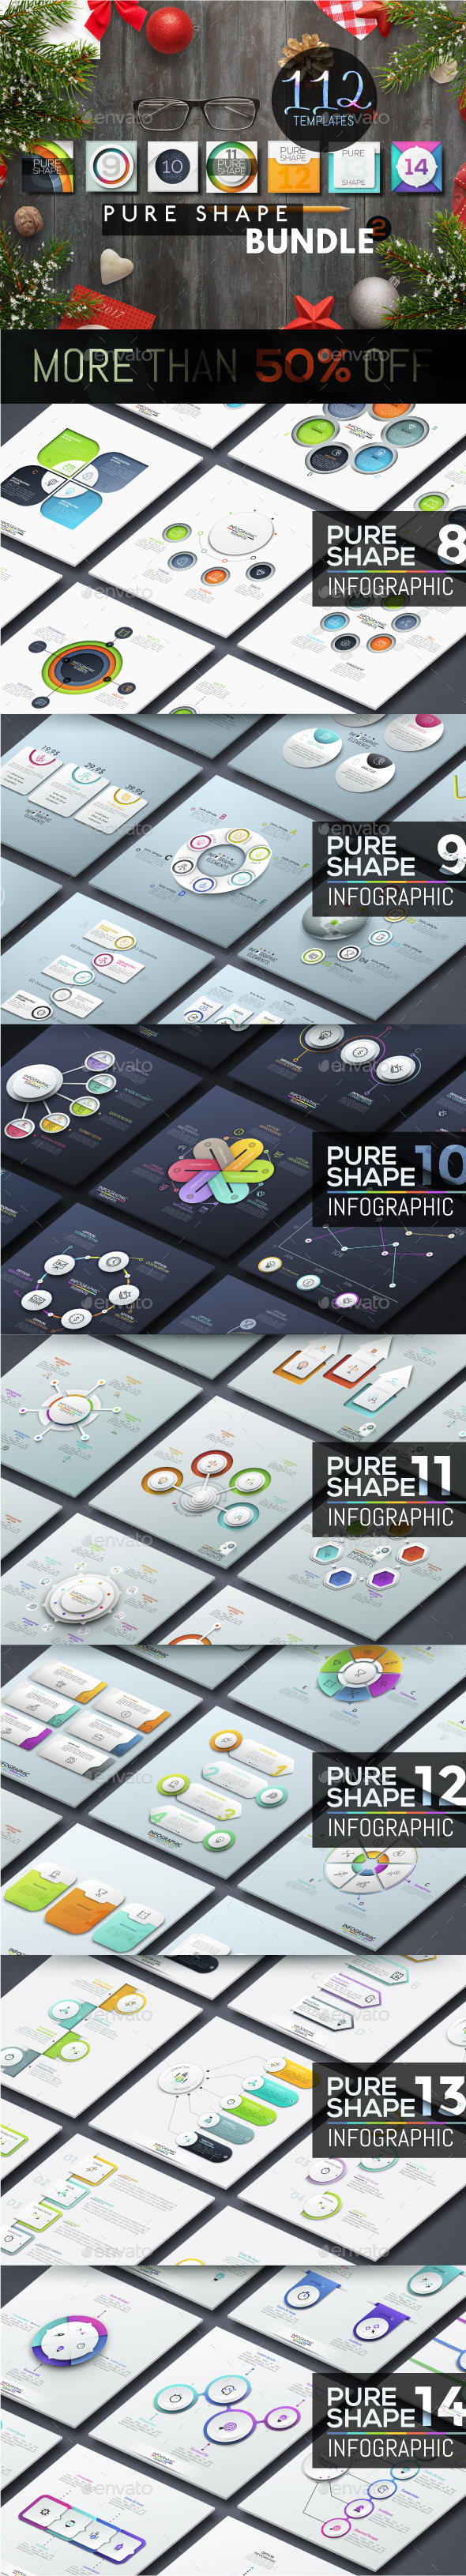 Pure Shape Infographic Bundle 2 - Infographics